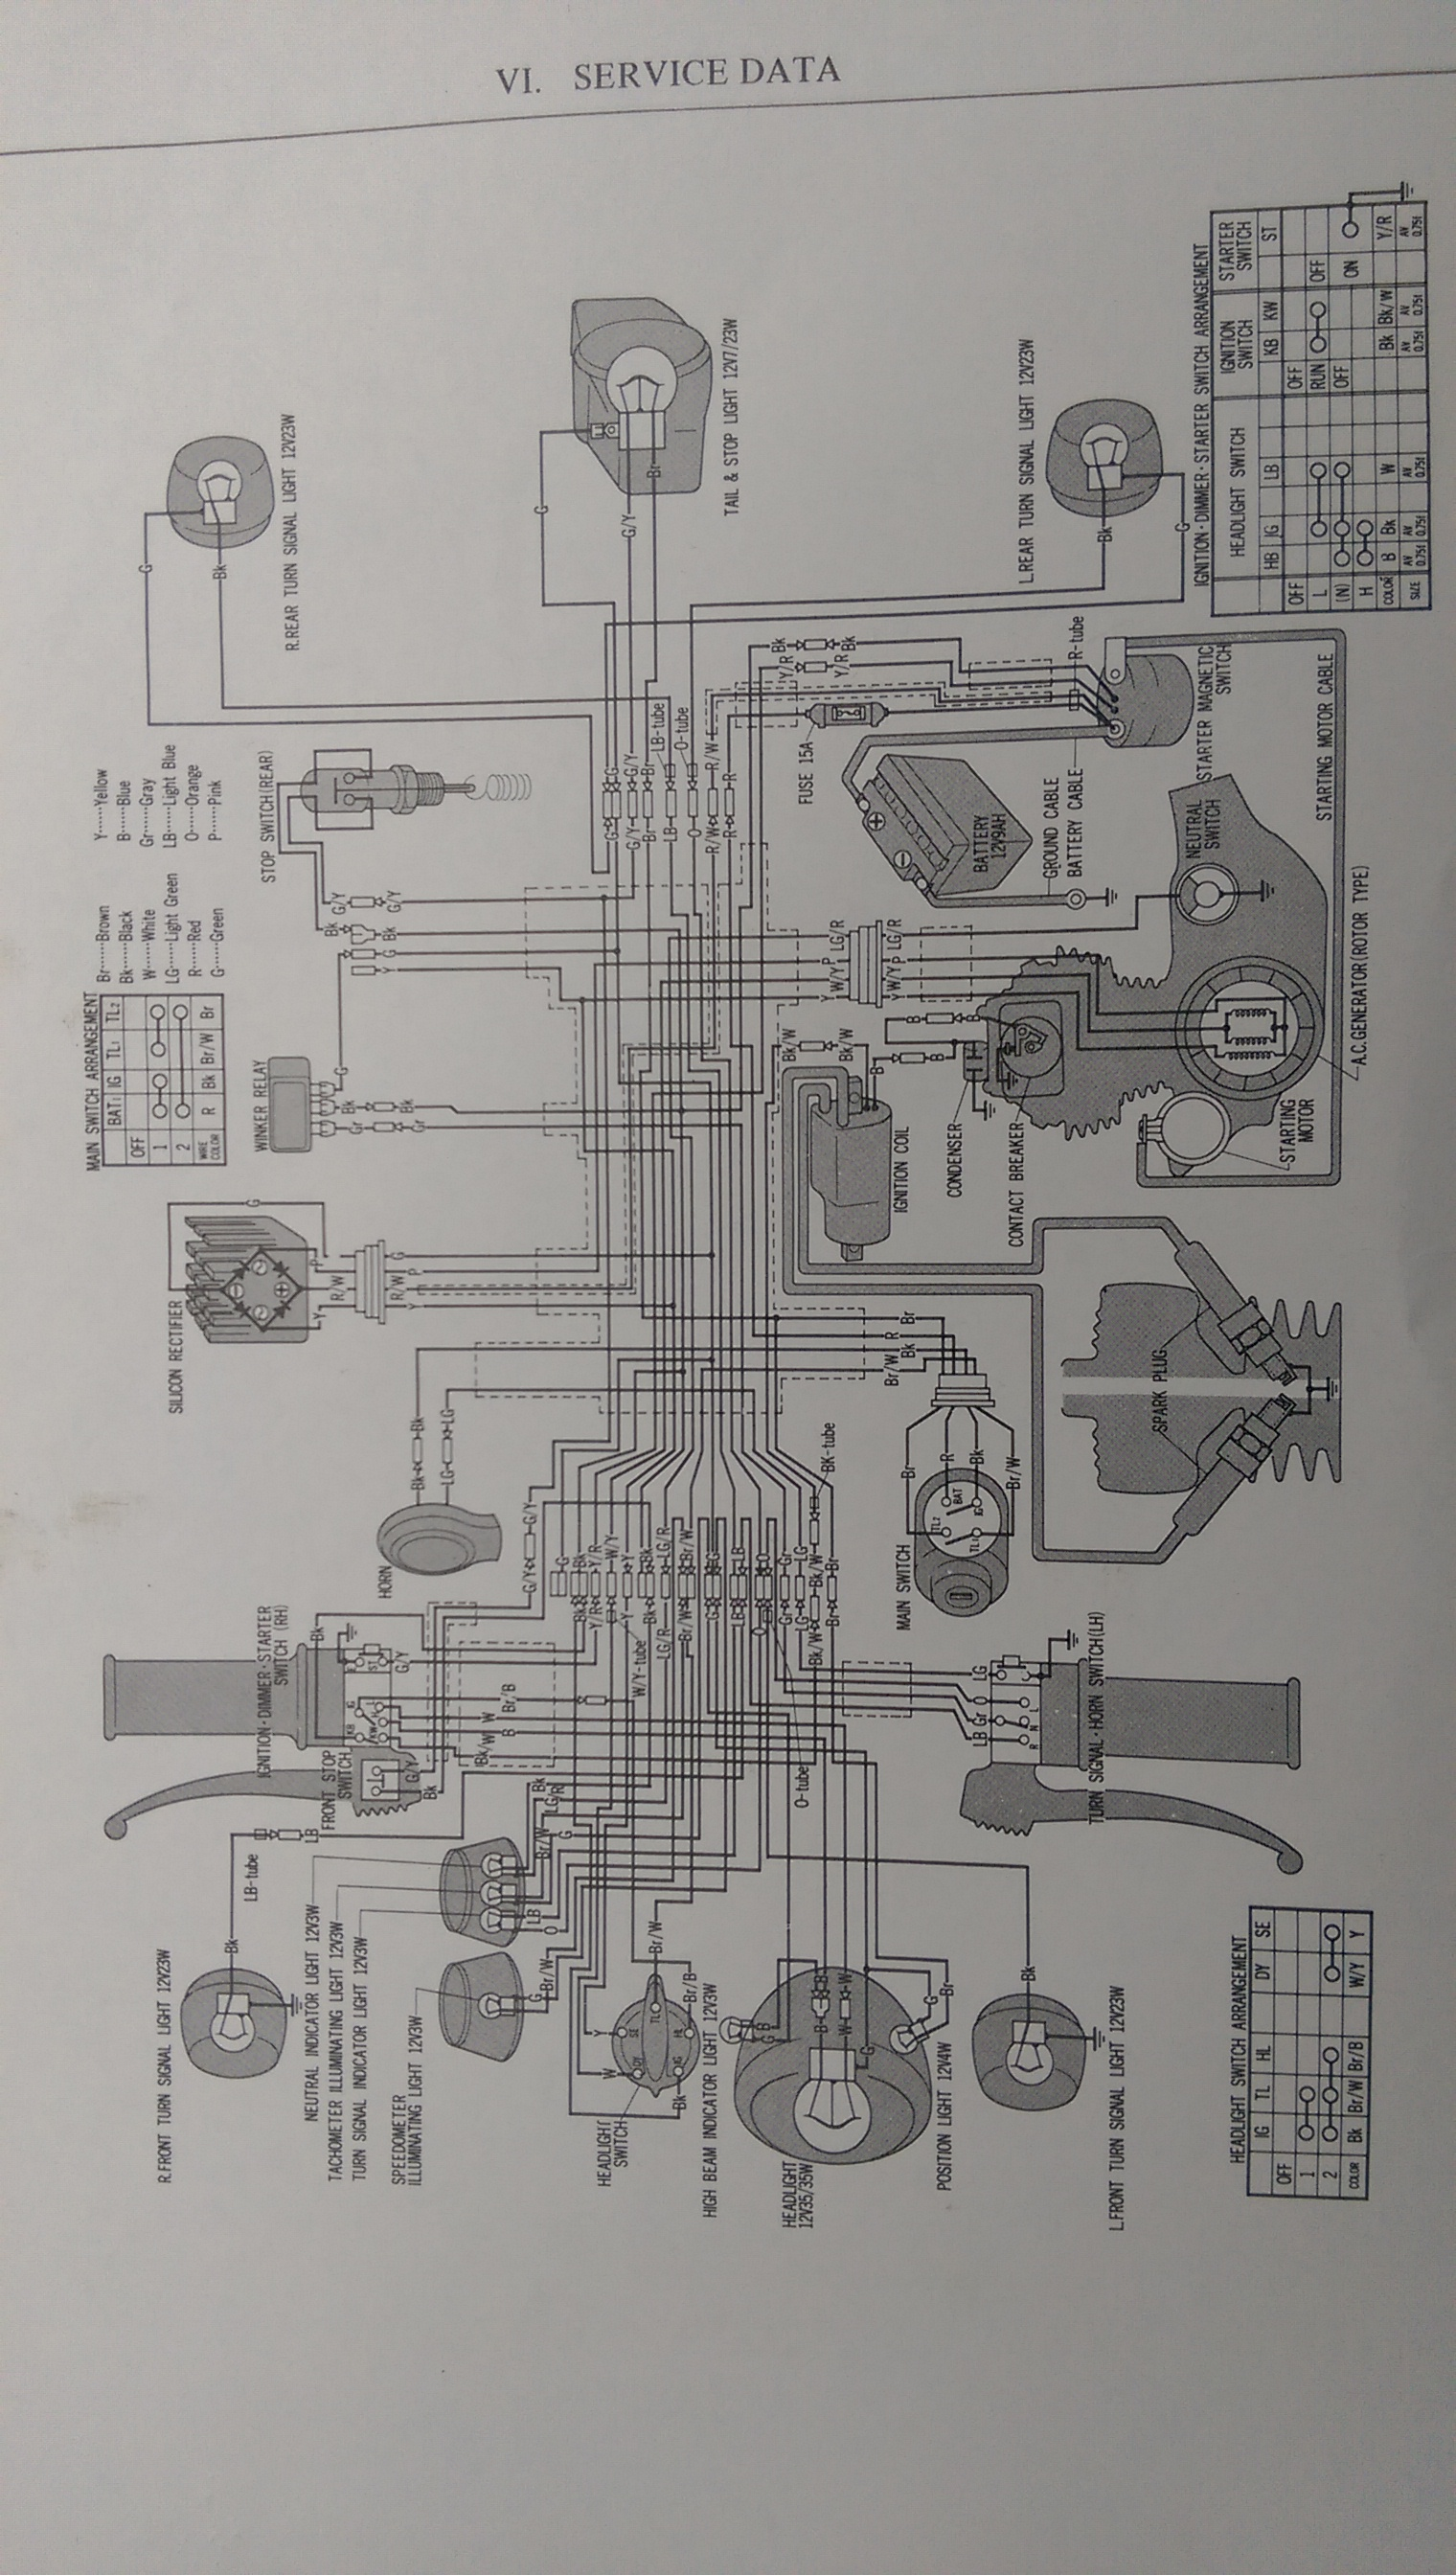 motorcycle wiring diagram symbols images hvac wiring diagram wiring also 1975 xl350 diagram diagrams schematics ideas